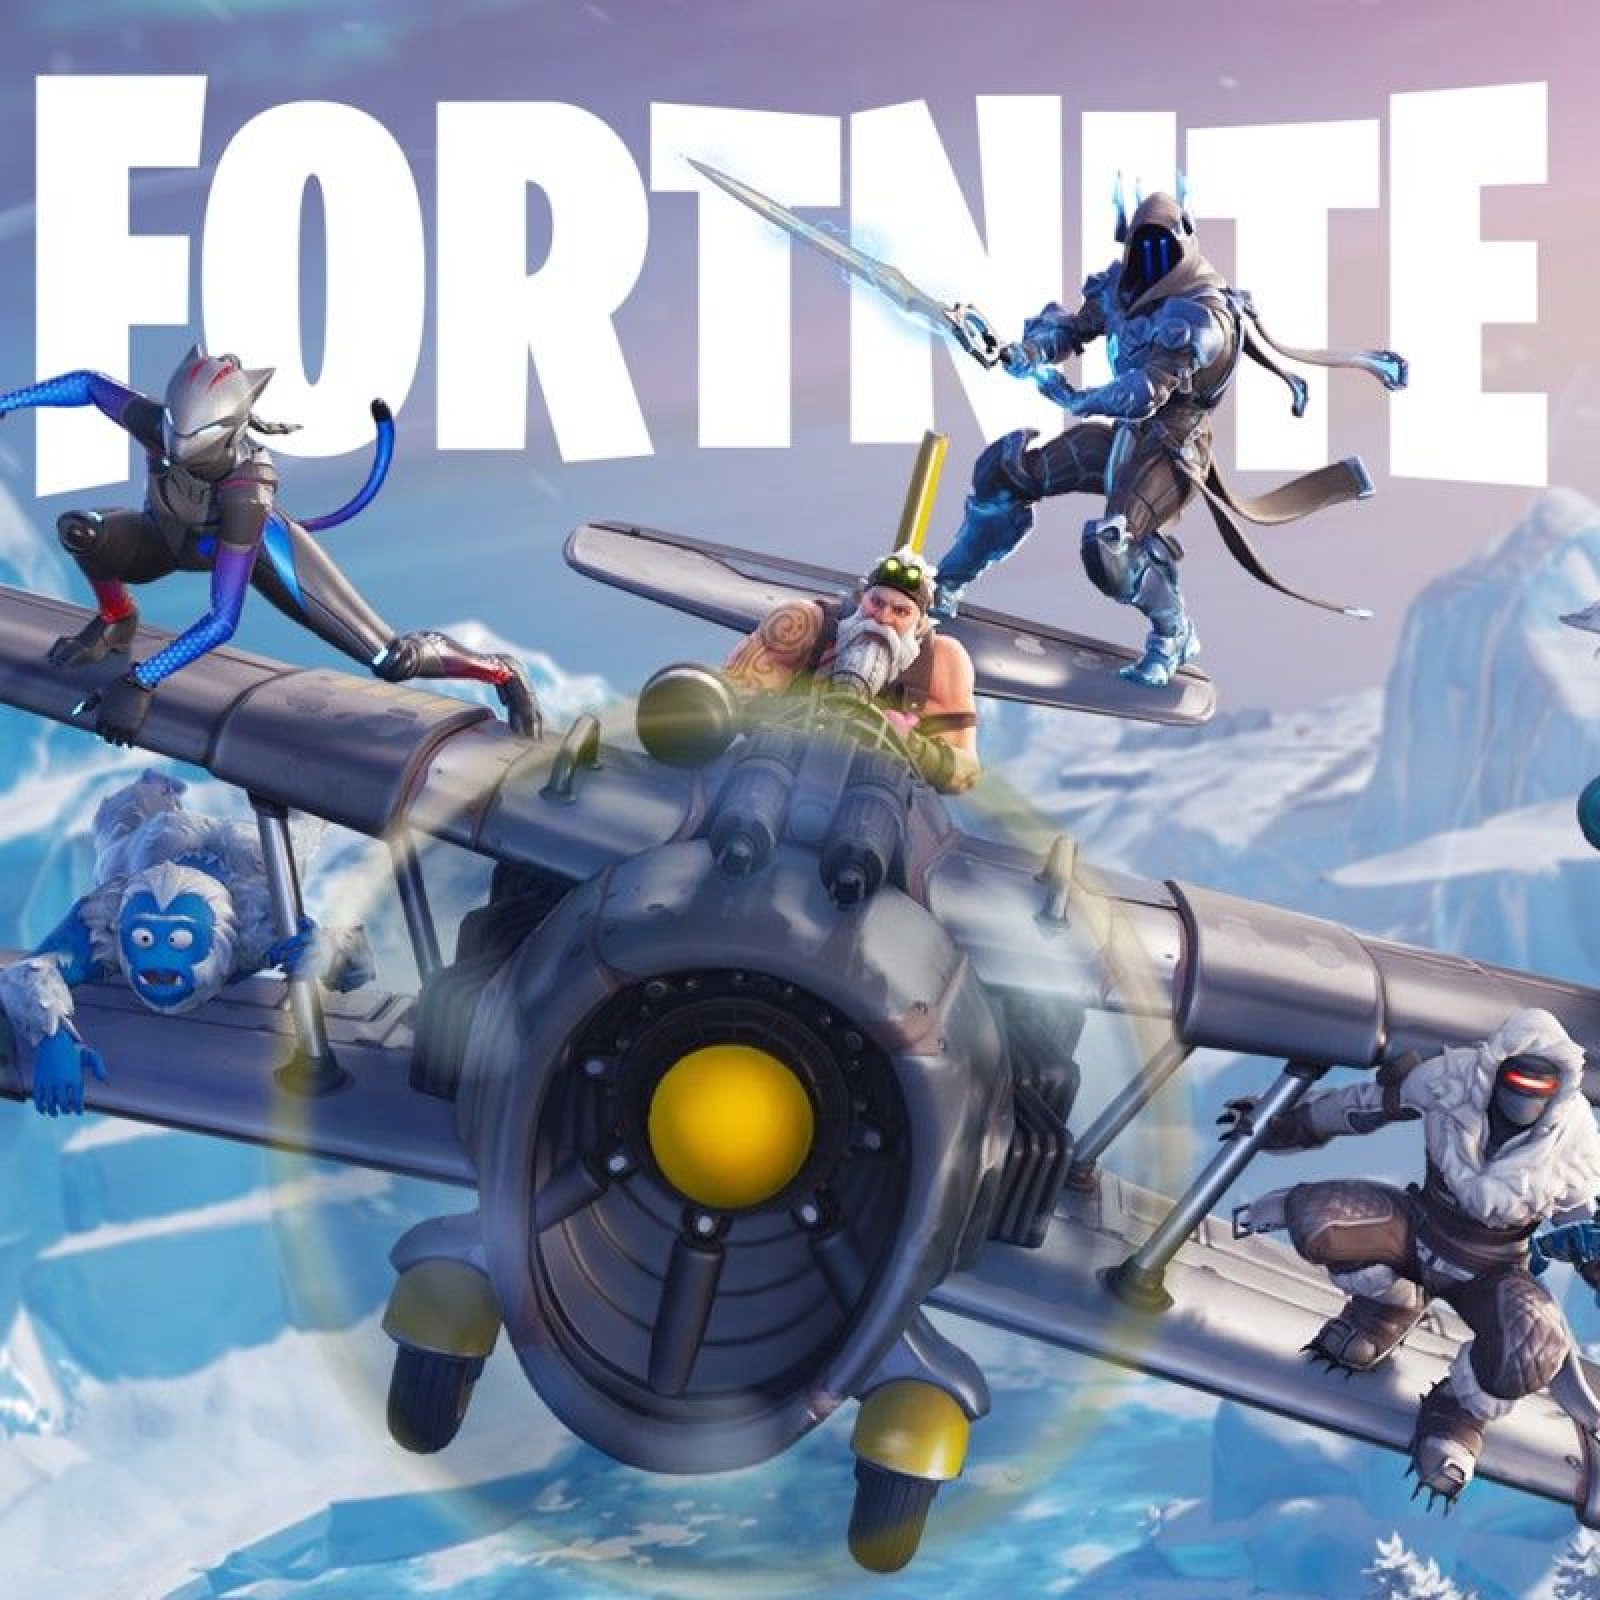 Fortnite' Down? Login Issues As Players Report They Can't